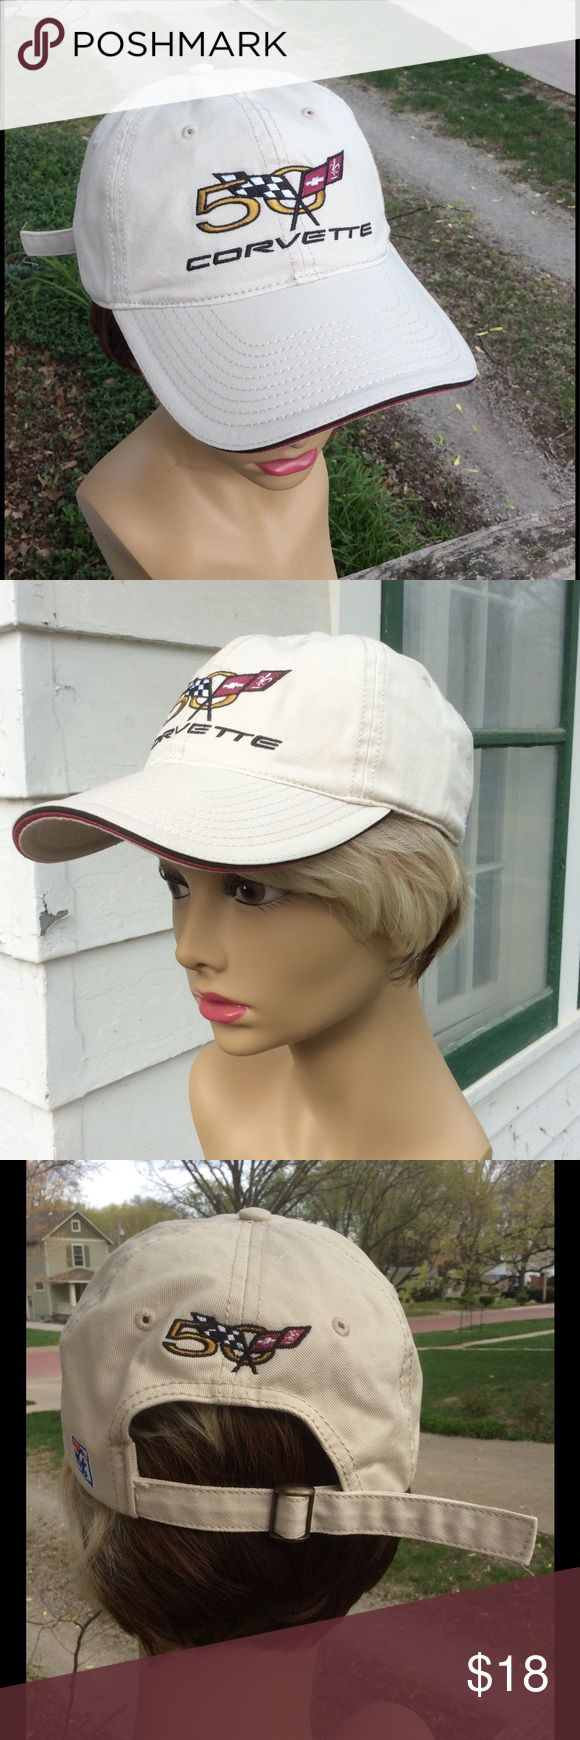 Unisex Corvette 50th Anniversary Cap Purchased in 2003, Corvette's 50th anniversary year. Slight yellowing inside front, but don't think it has been worn. This is an original! Adjustable. Unisex. Corvette Accessories Hats